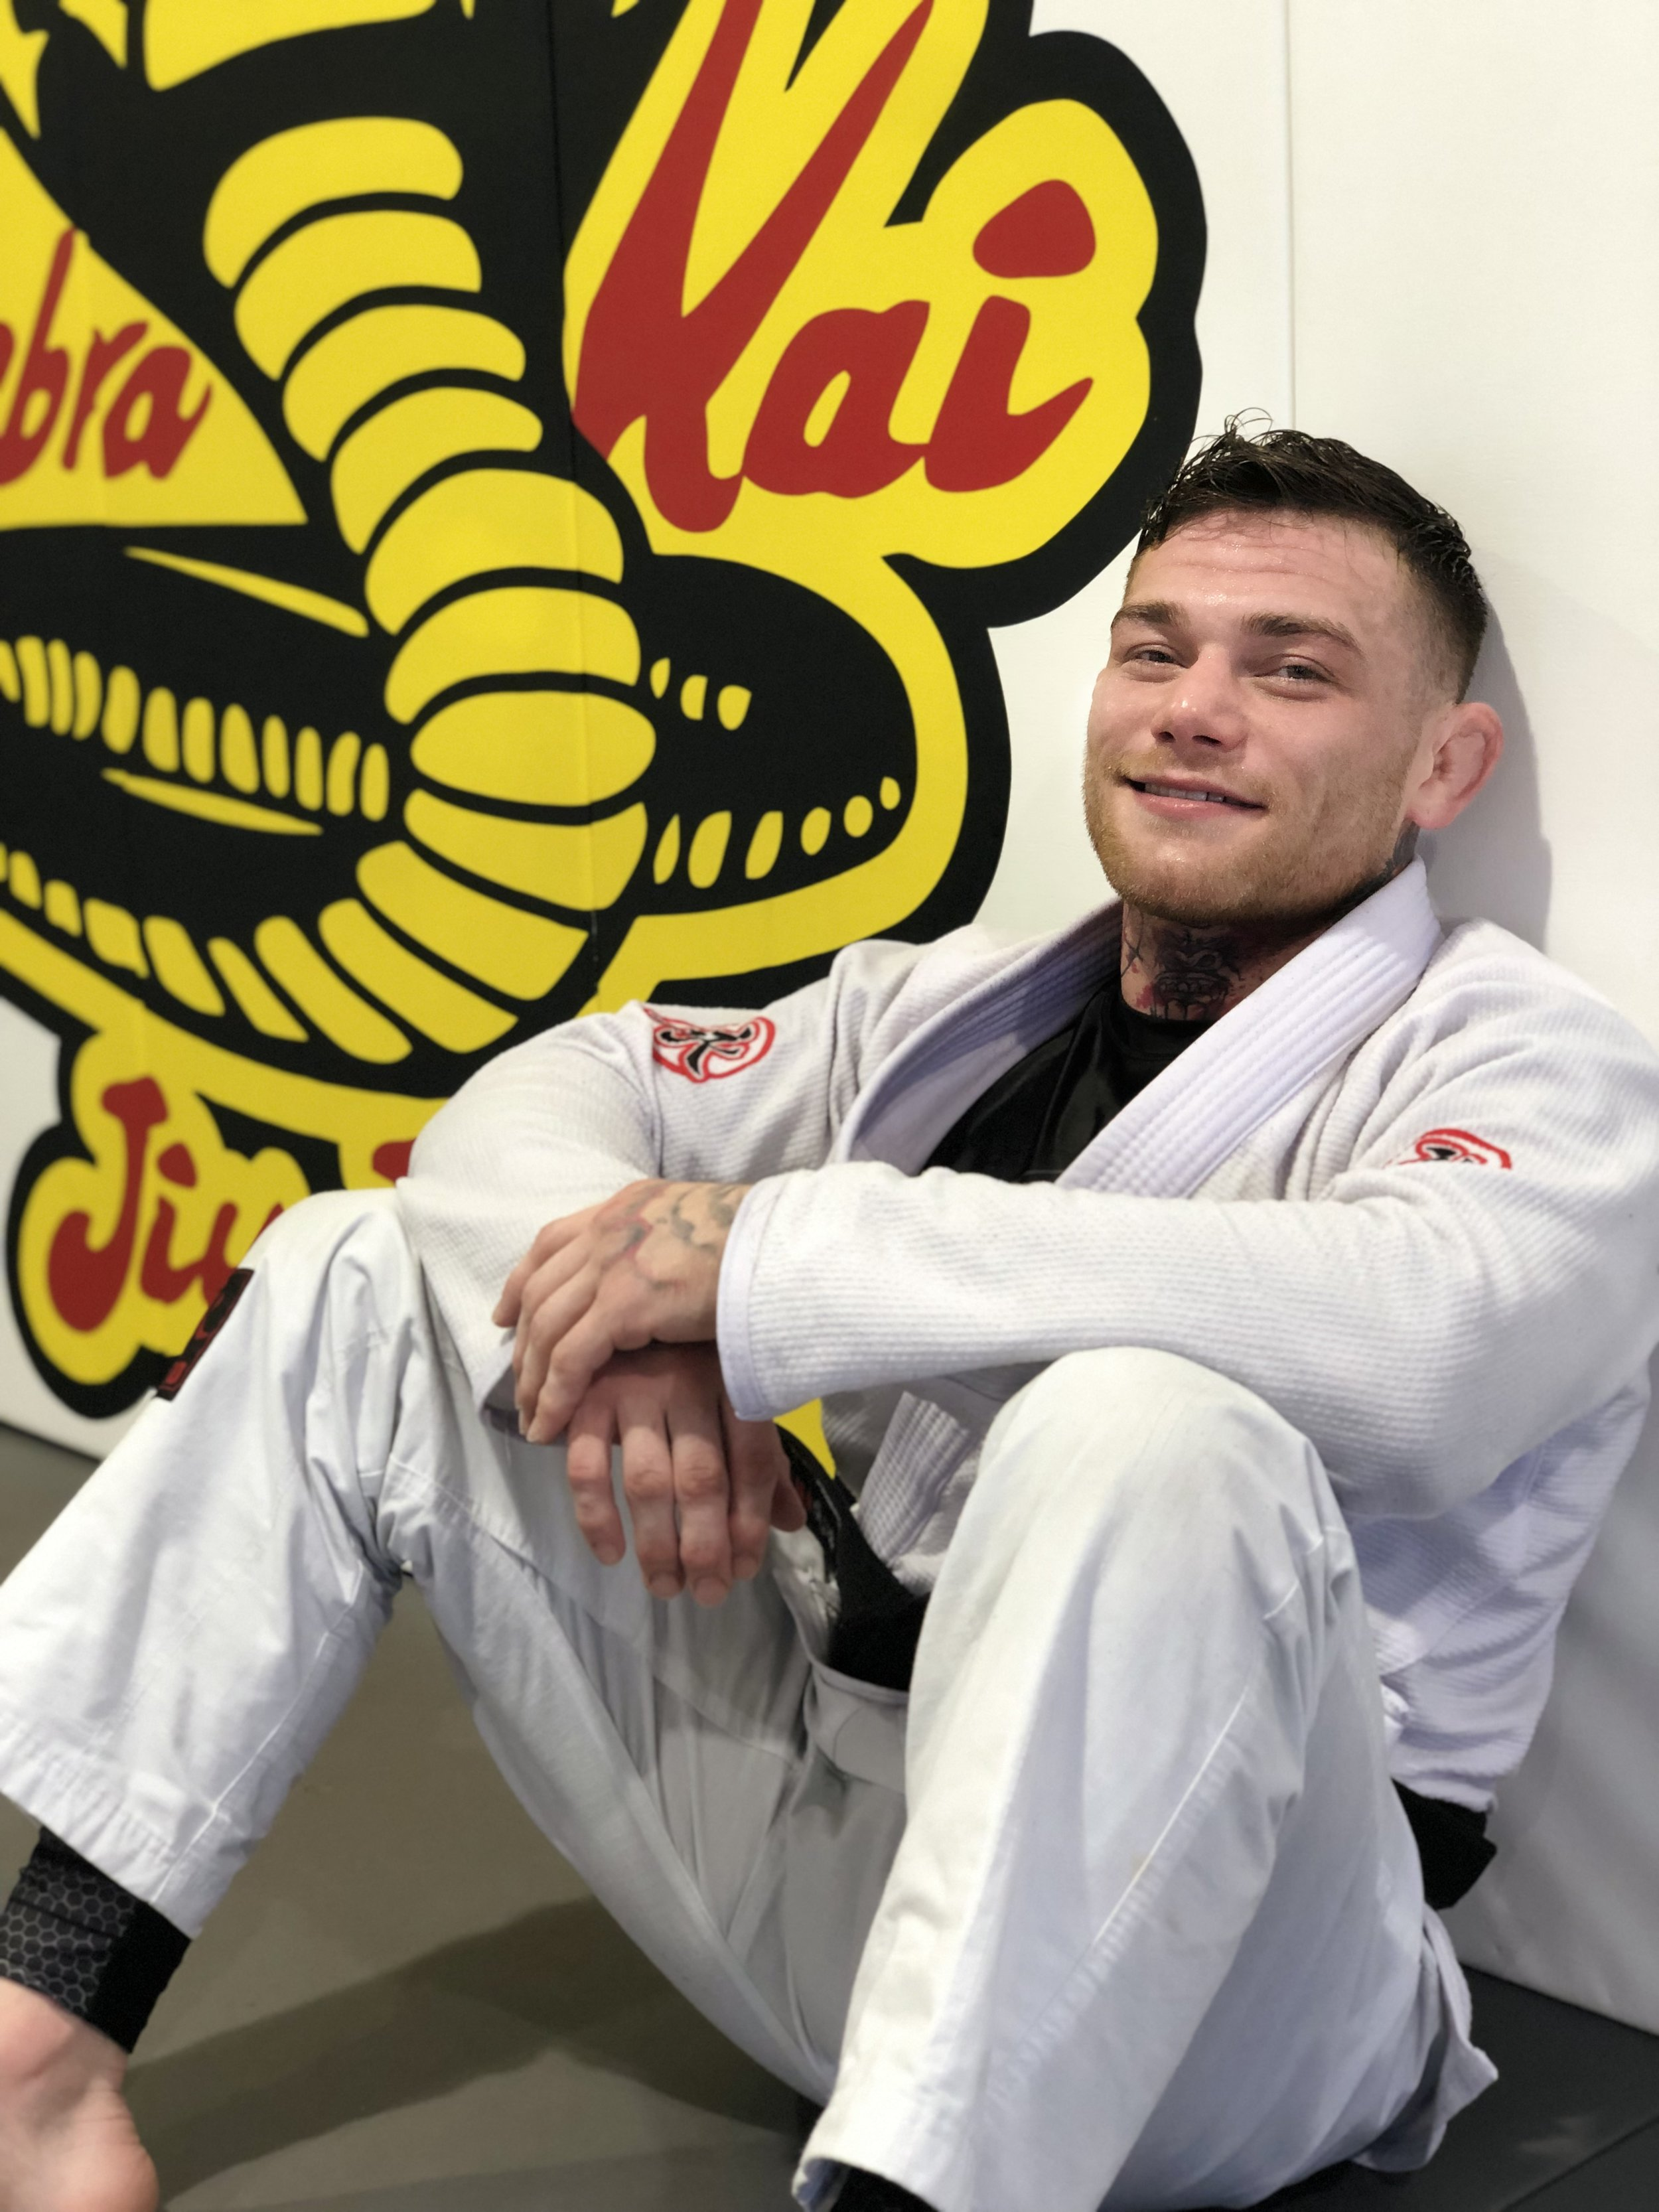 Shane Shapiro  American Nationals Gold Medalist/Brown Belt Five Grappling Champion/GI/No GI/Open Weight Submission Hunter Pro Champion No Gi Worlds Silver Medalist/Purple Belt Pan-Am Bronze Medalist/Brown Belt